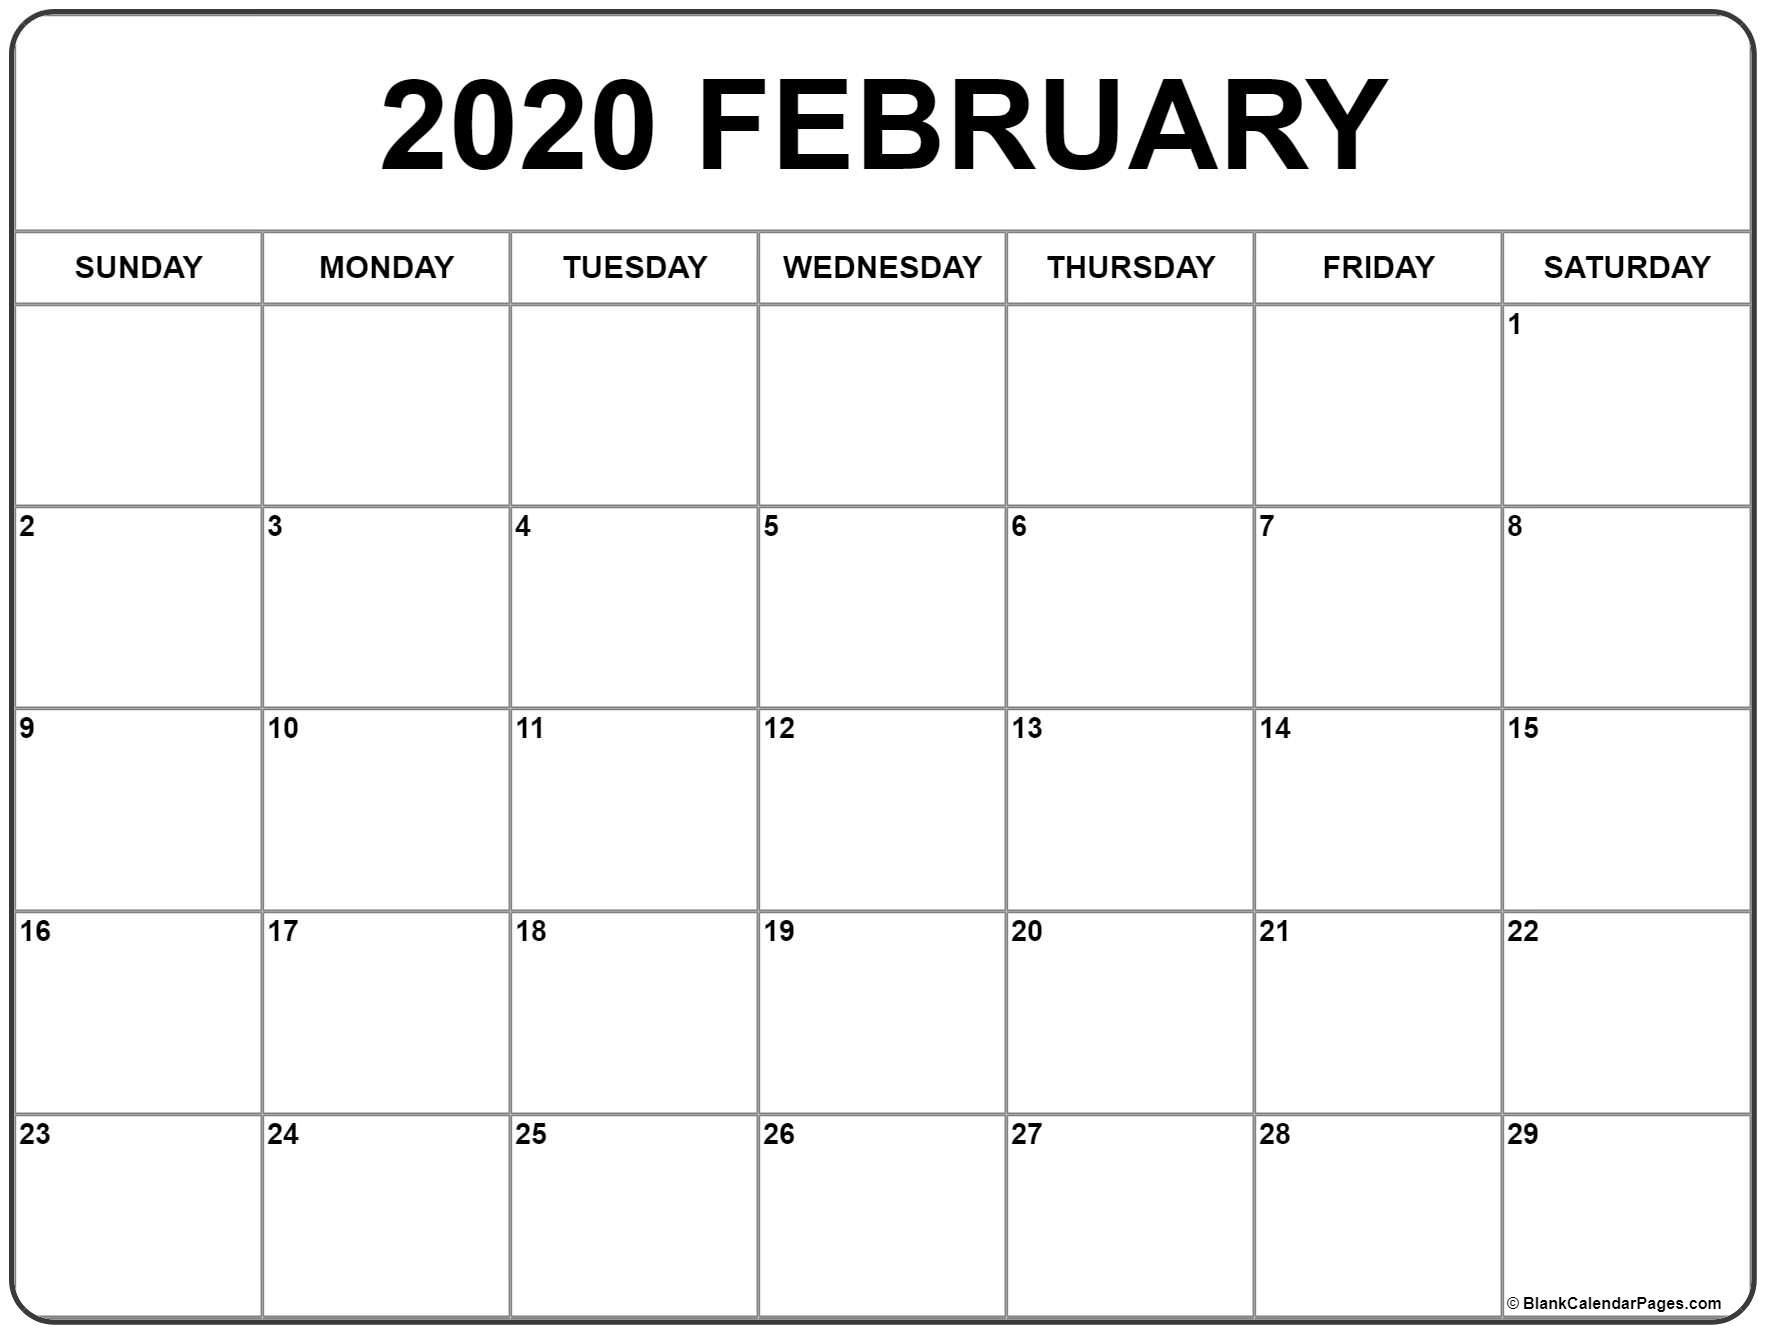 Calendar February 2020 Printable | Free Printable Calendar Monthly throughout Free 8/2019 -5/ 2020 Printable Calendar